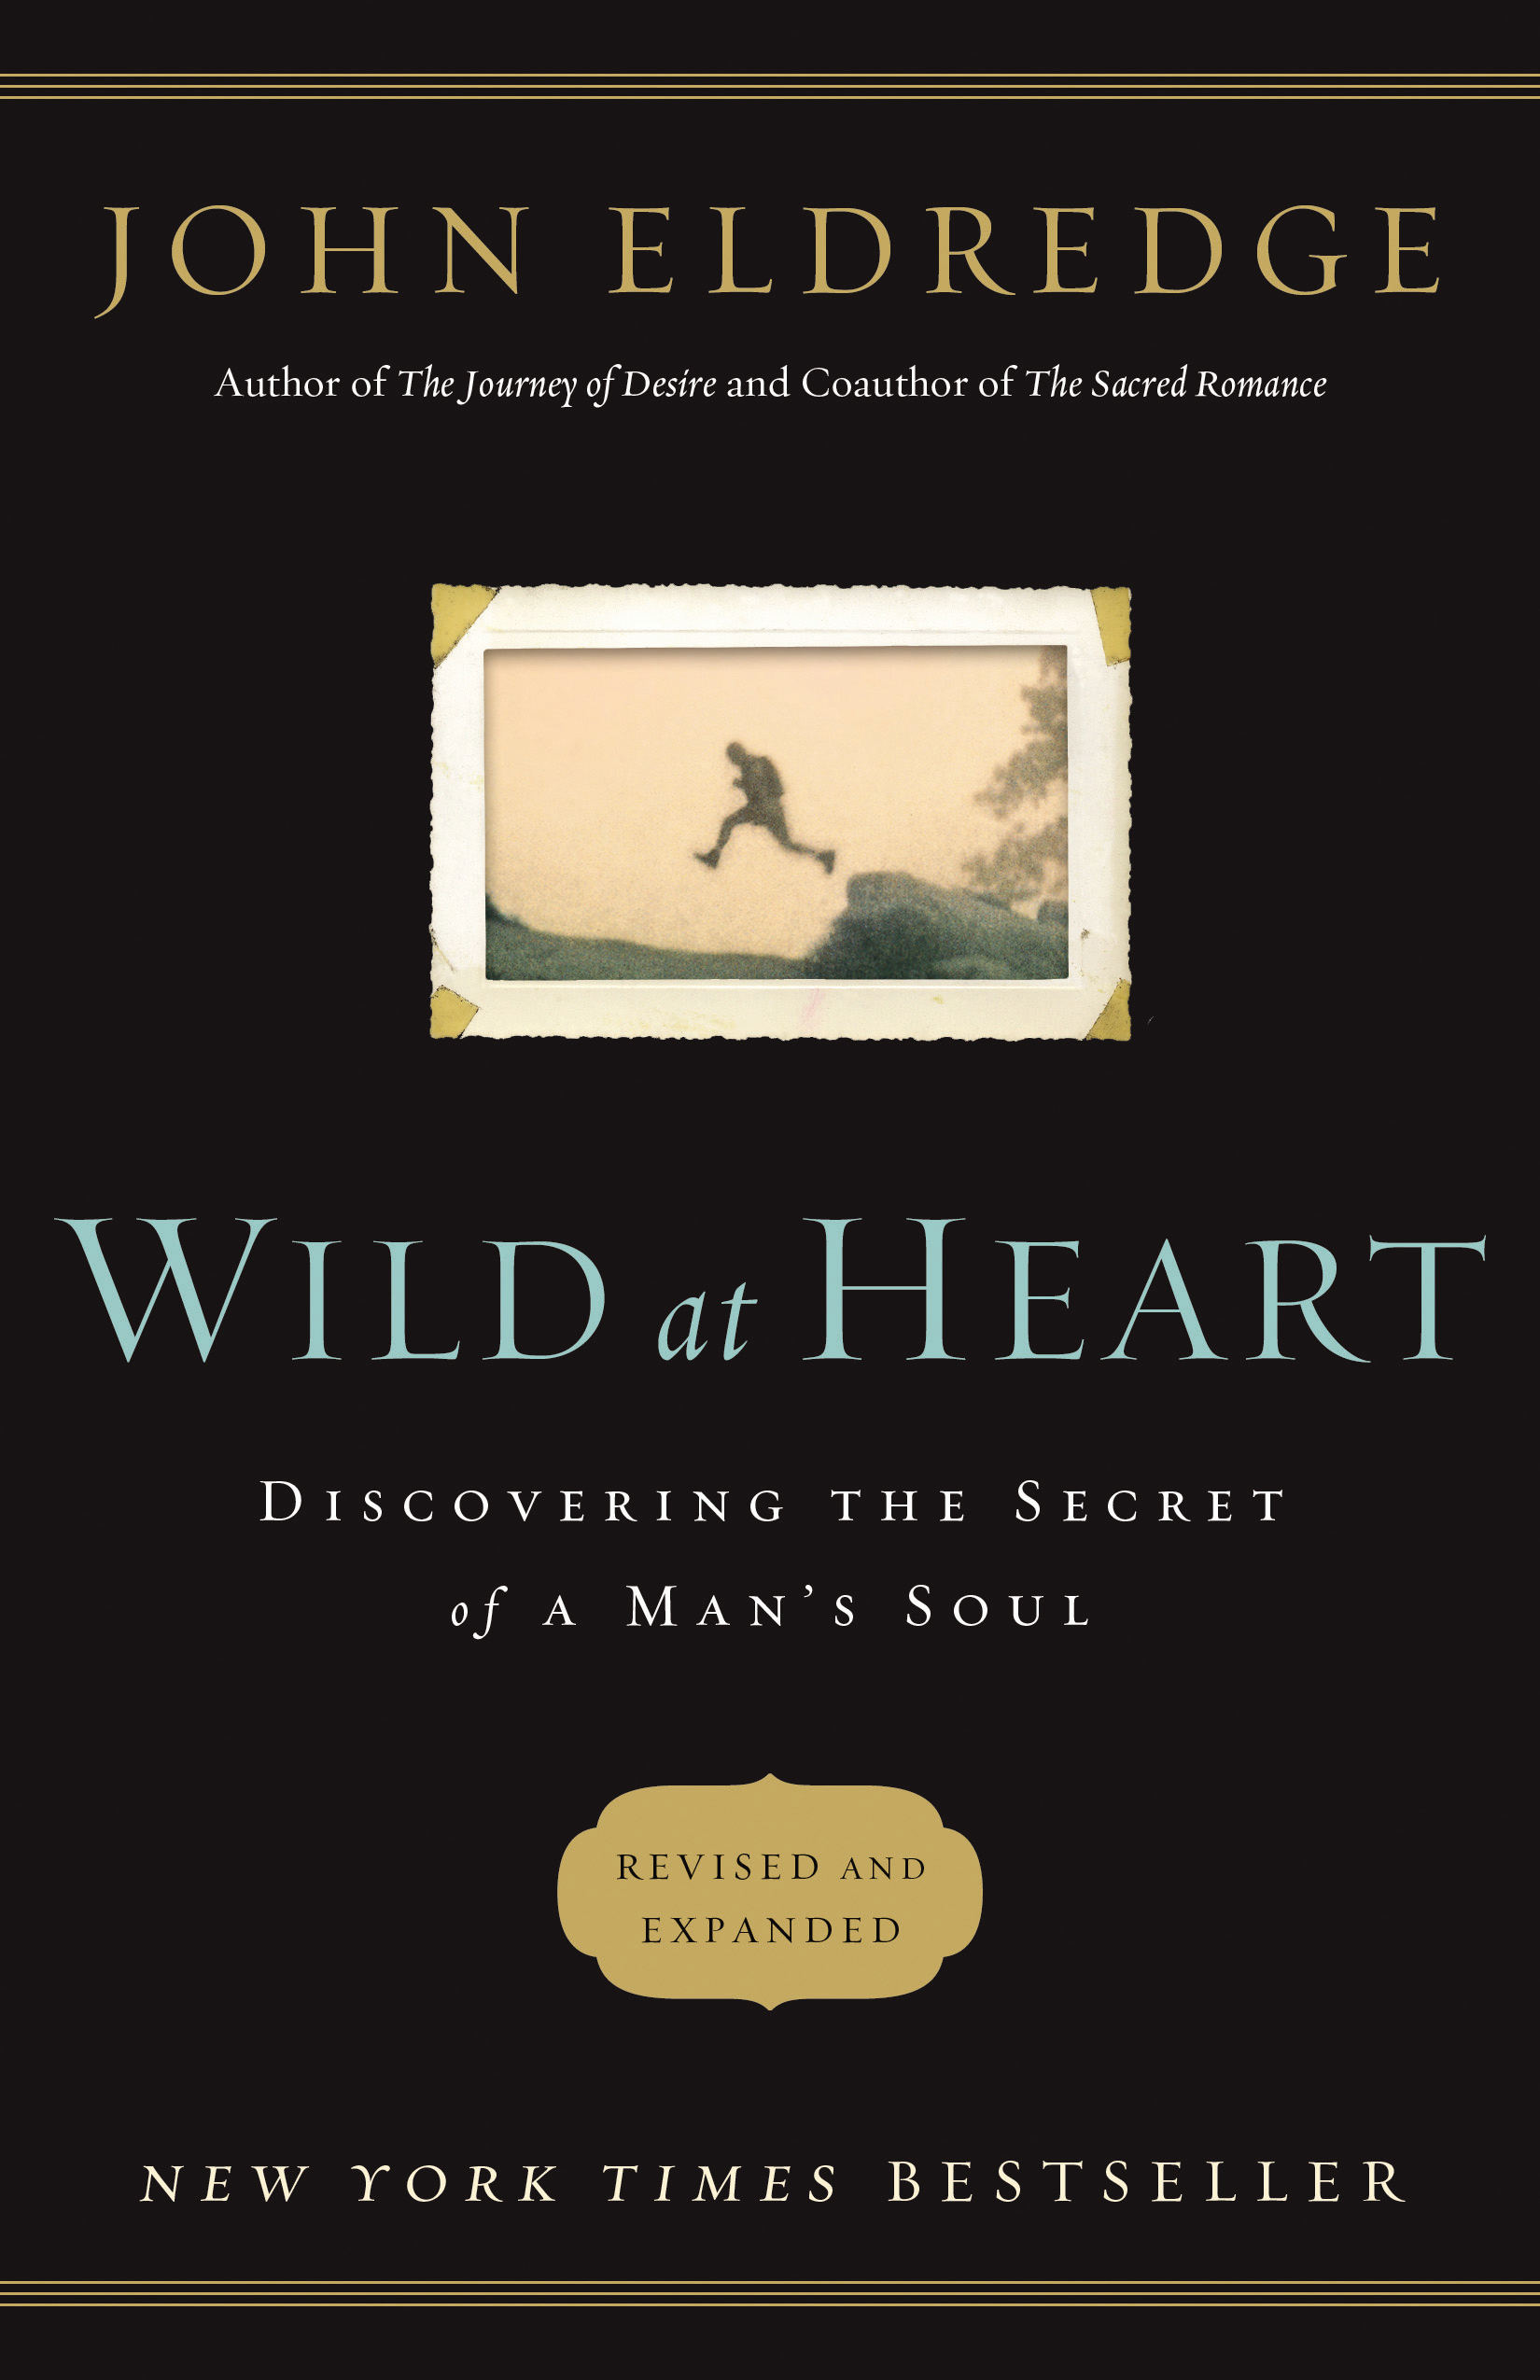 Wild at Heart: Discovering the Secret of a Man's Soul